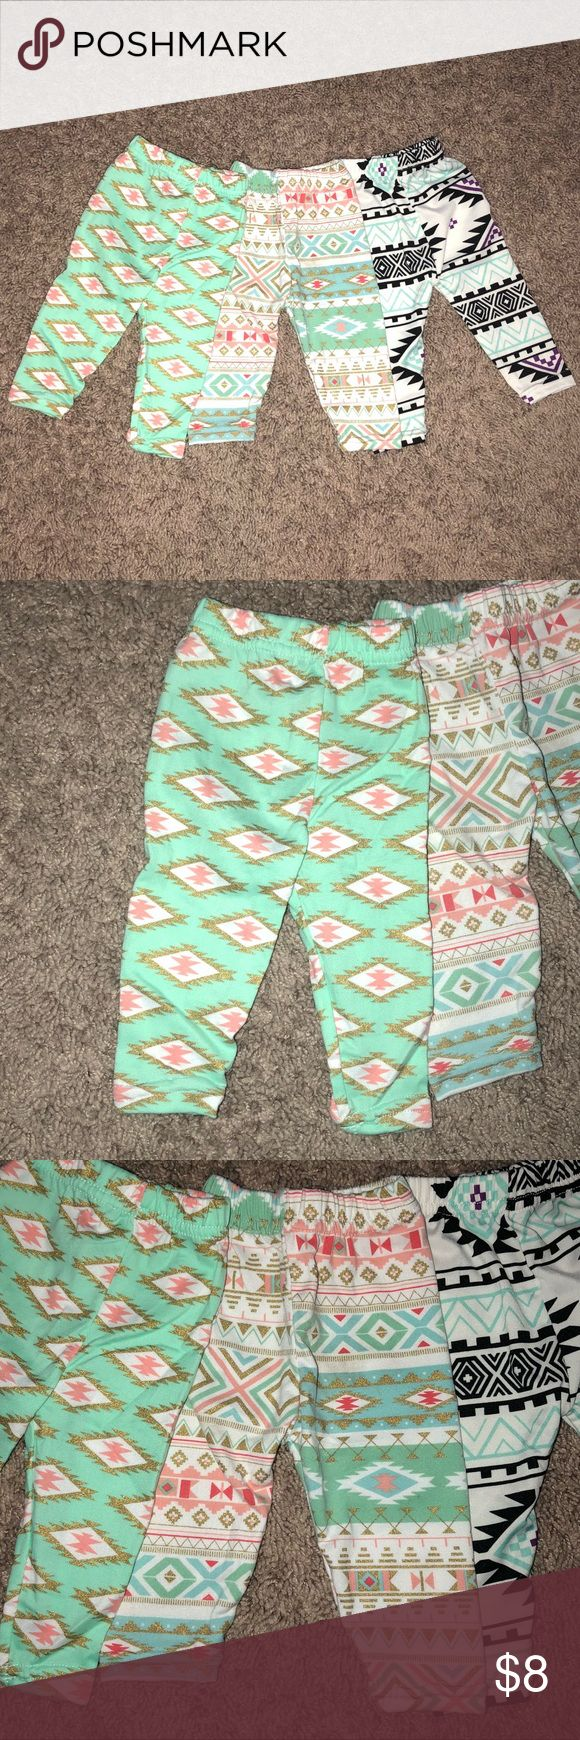 3 Tribal Print Leggings 3 Pairs of Leggings All different Tribal and Aztec Style Prints   Size XS (0-3M)   Feel free to make an offer! Bailey's Blossoms Bottoms Leggings